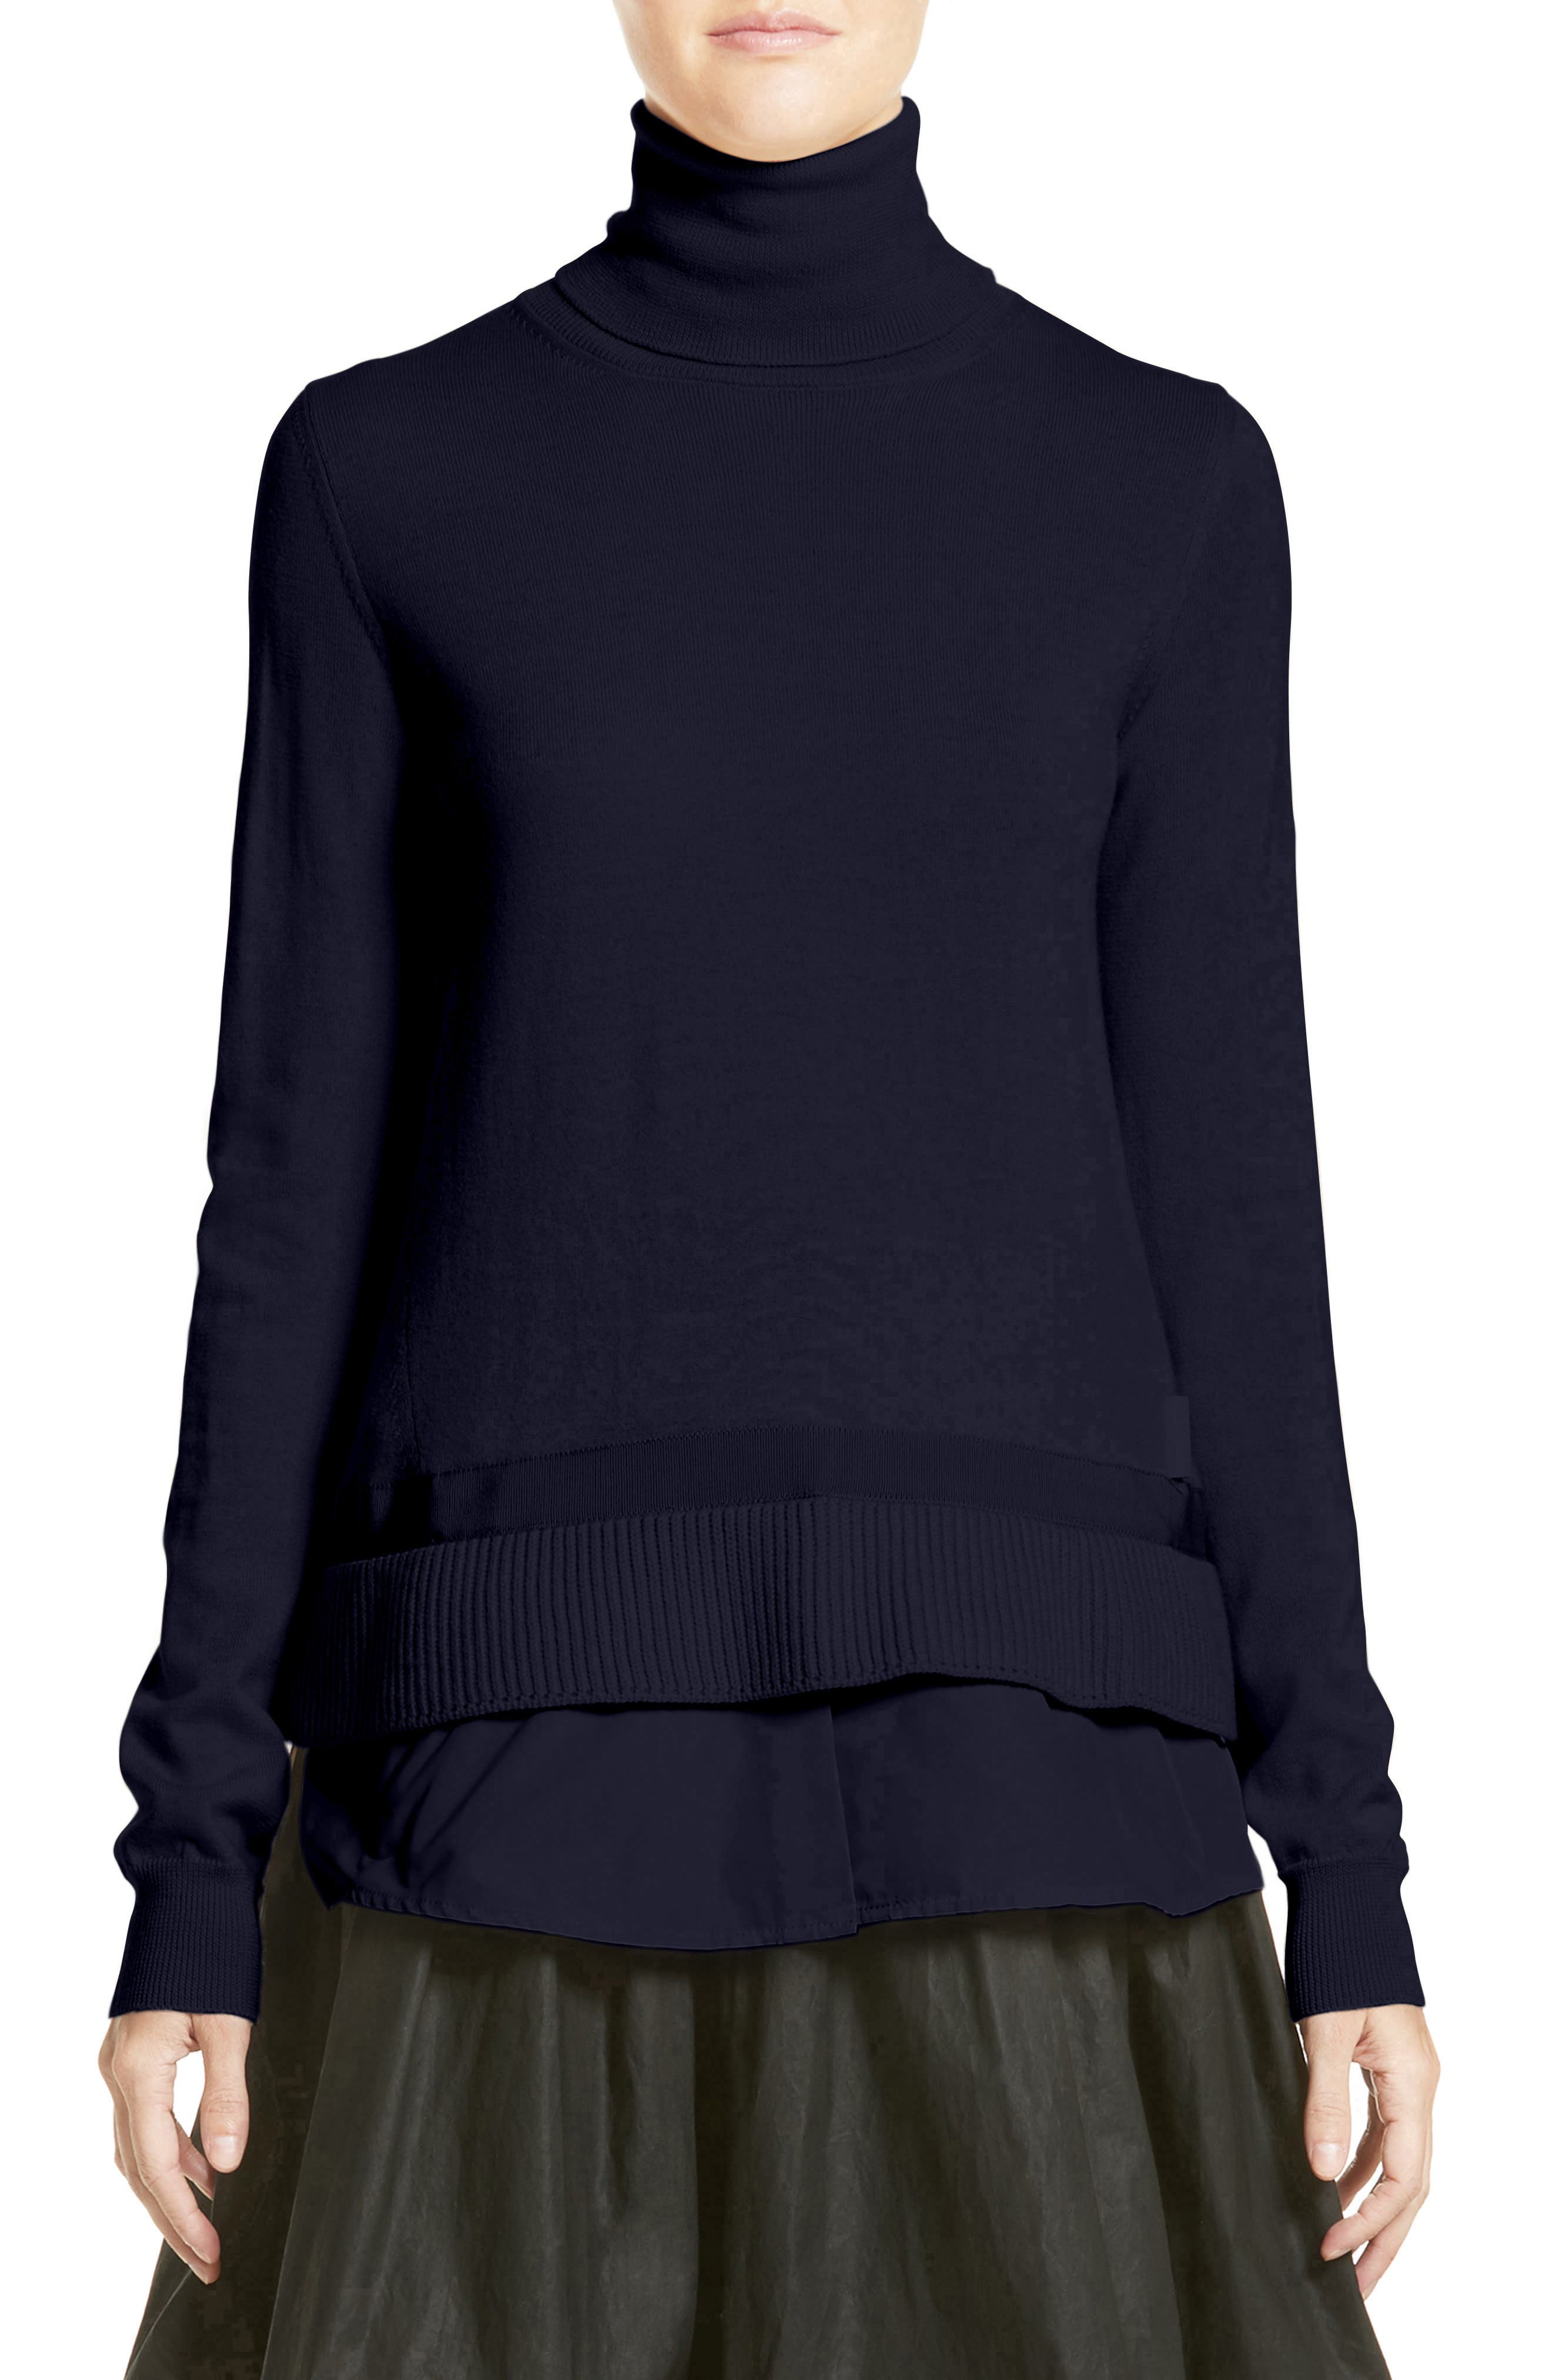 Alternate Image 1 Selected - Moncler Ciclista Tricot Knit Wool Turtleneck Sweater